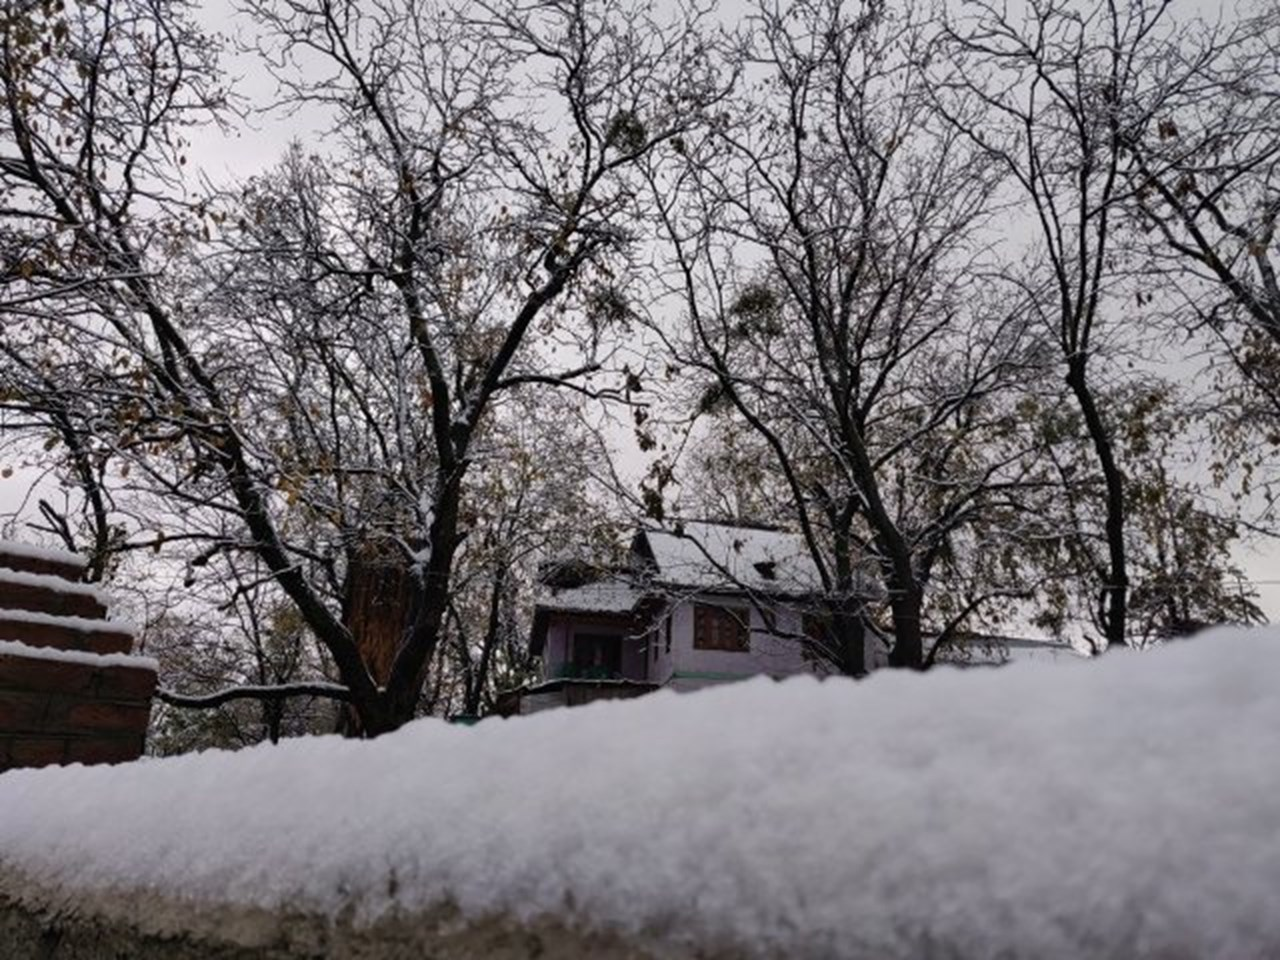 Srinagar and other plains of valley receive season's first snowfall